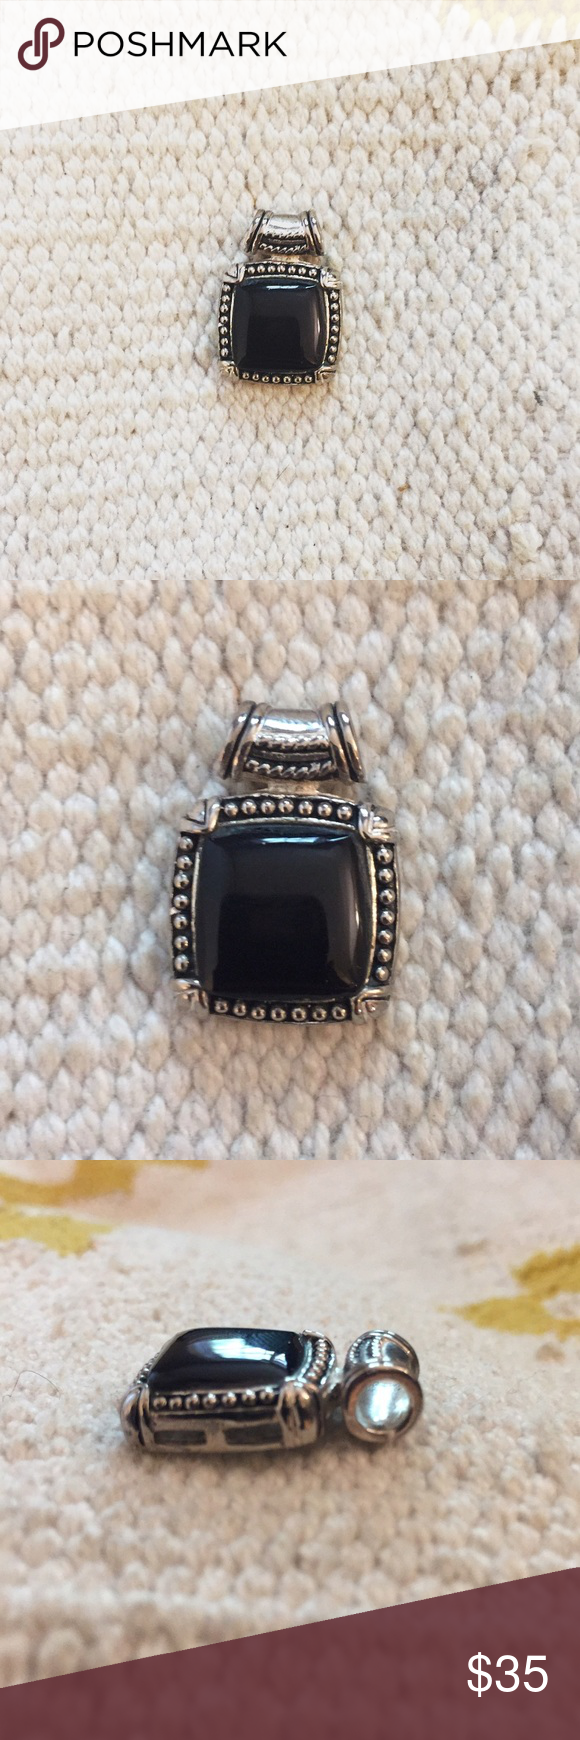 [vintage] pendant silver + black vintage necklace pendant (not free people)! never been worn! ✨🎉 Free People Jewelry Necklaces